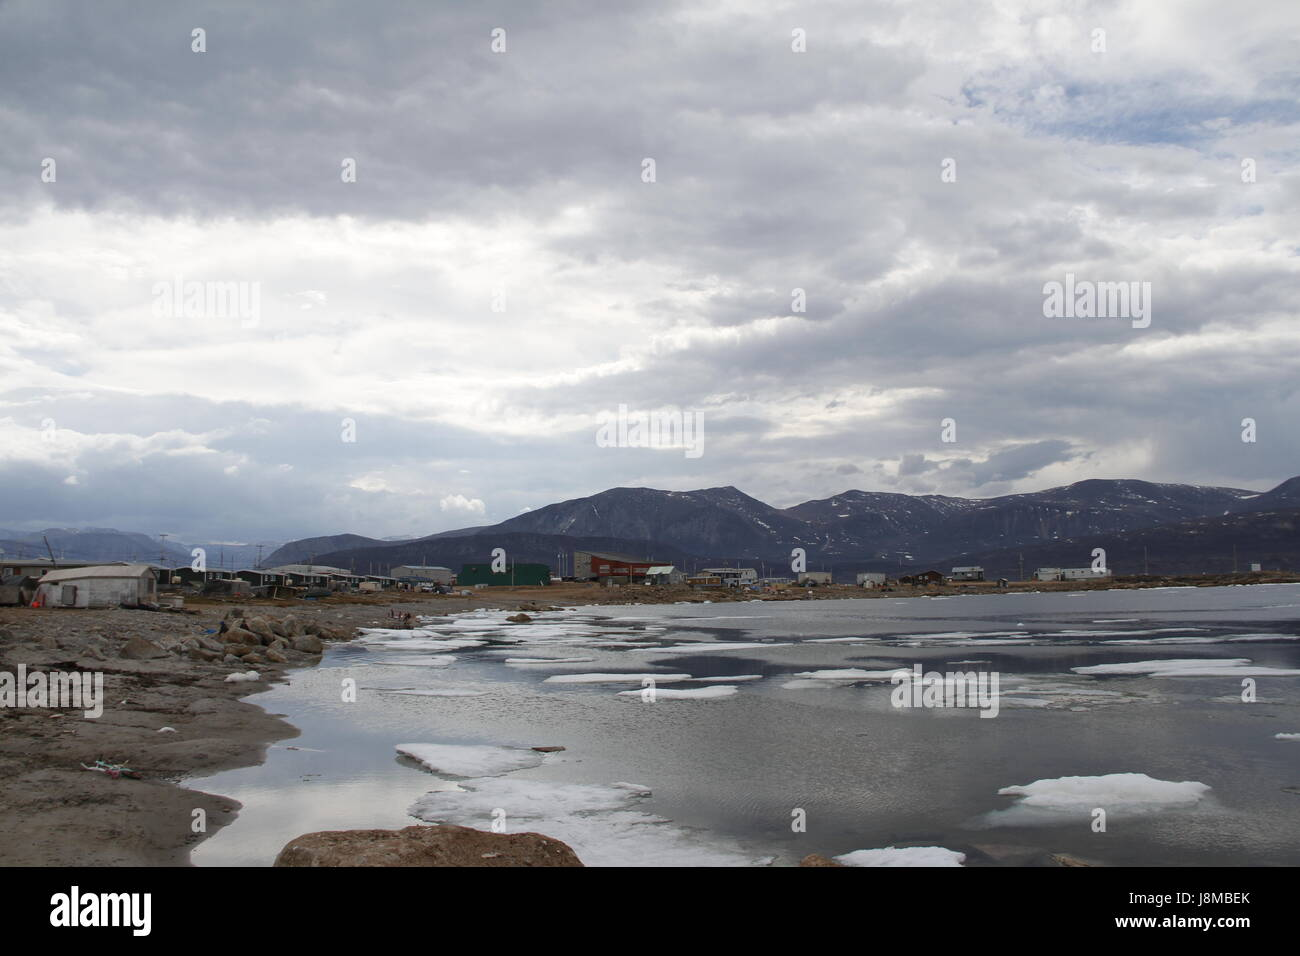 Overcast day in the community of Qikiqtarjuaq, Nunavut in the high Canadian arctic located on Broughton Island, - Stock Image